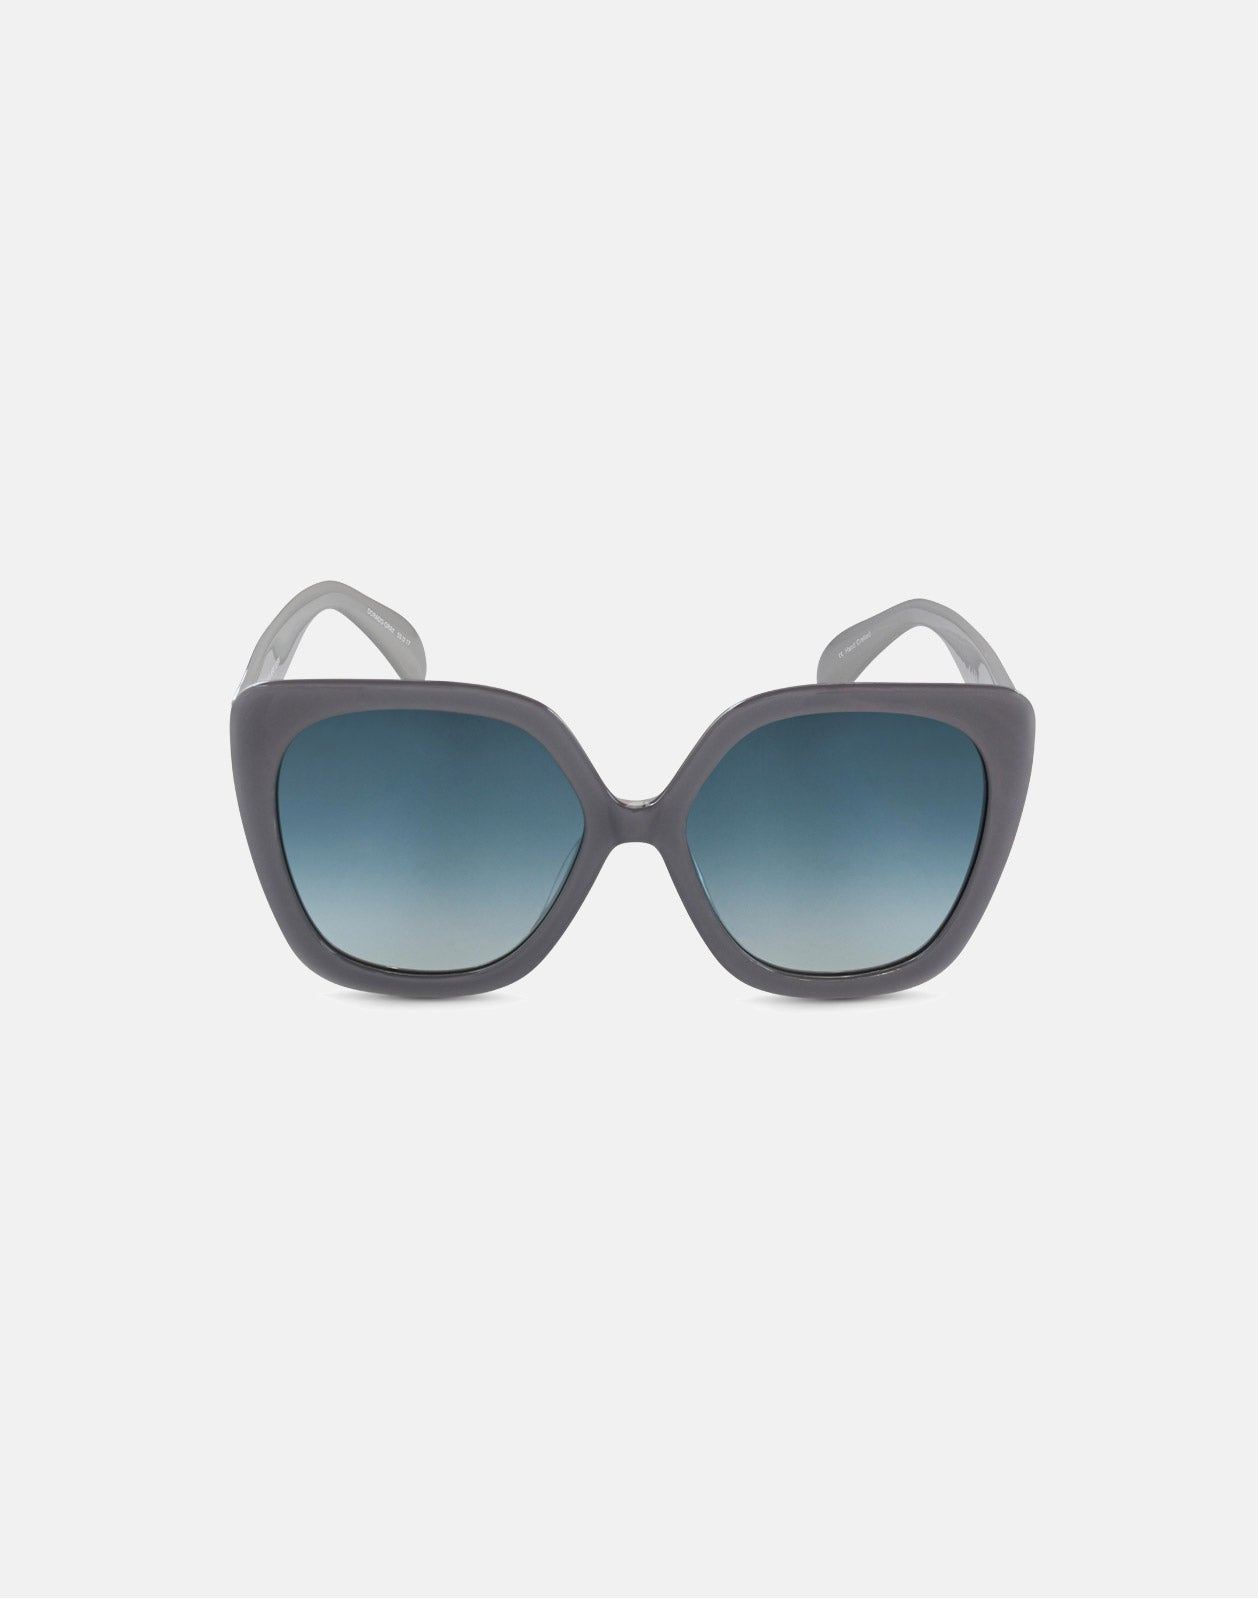 Dorado Gray Sunglasses front view